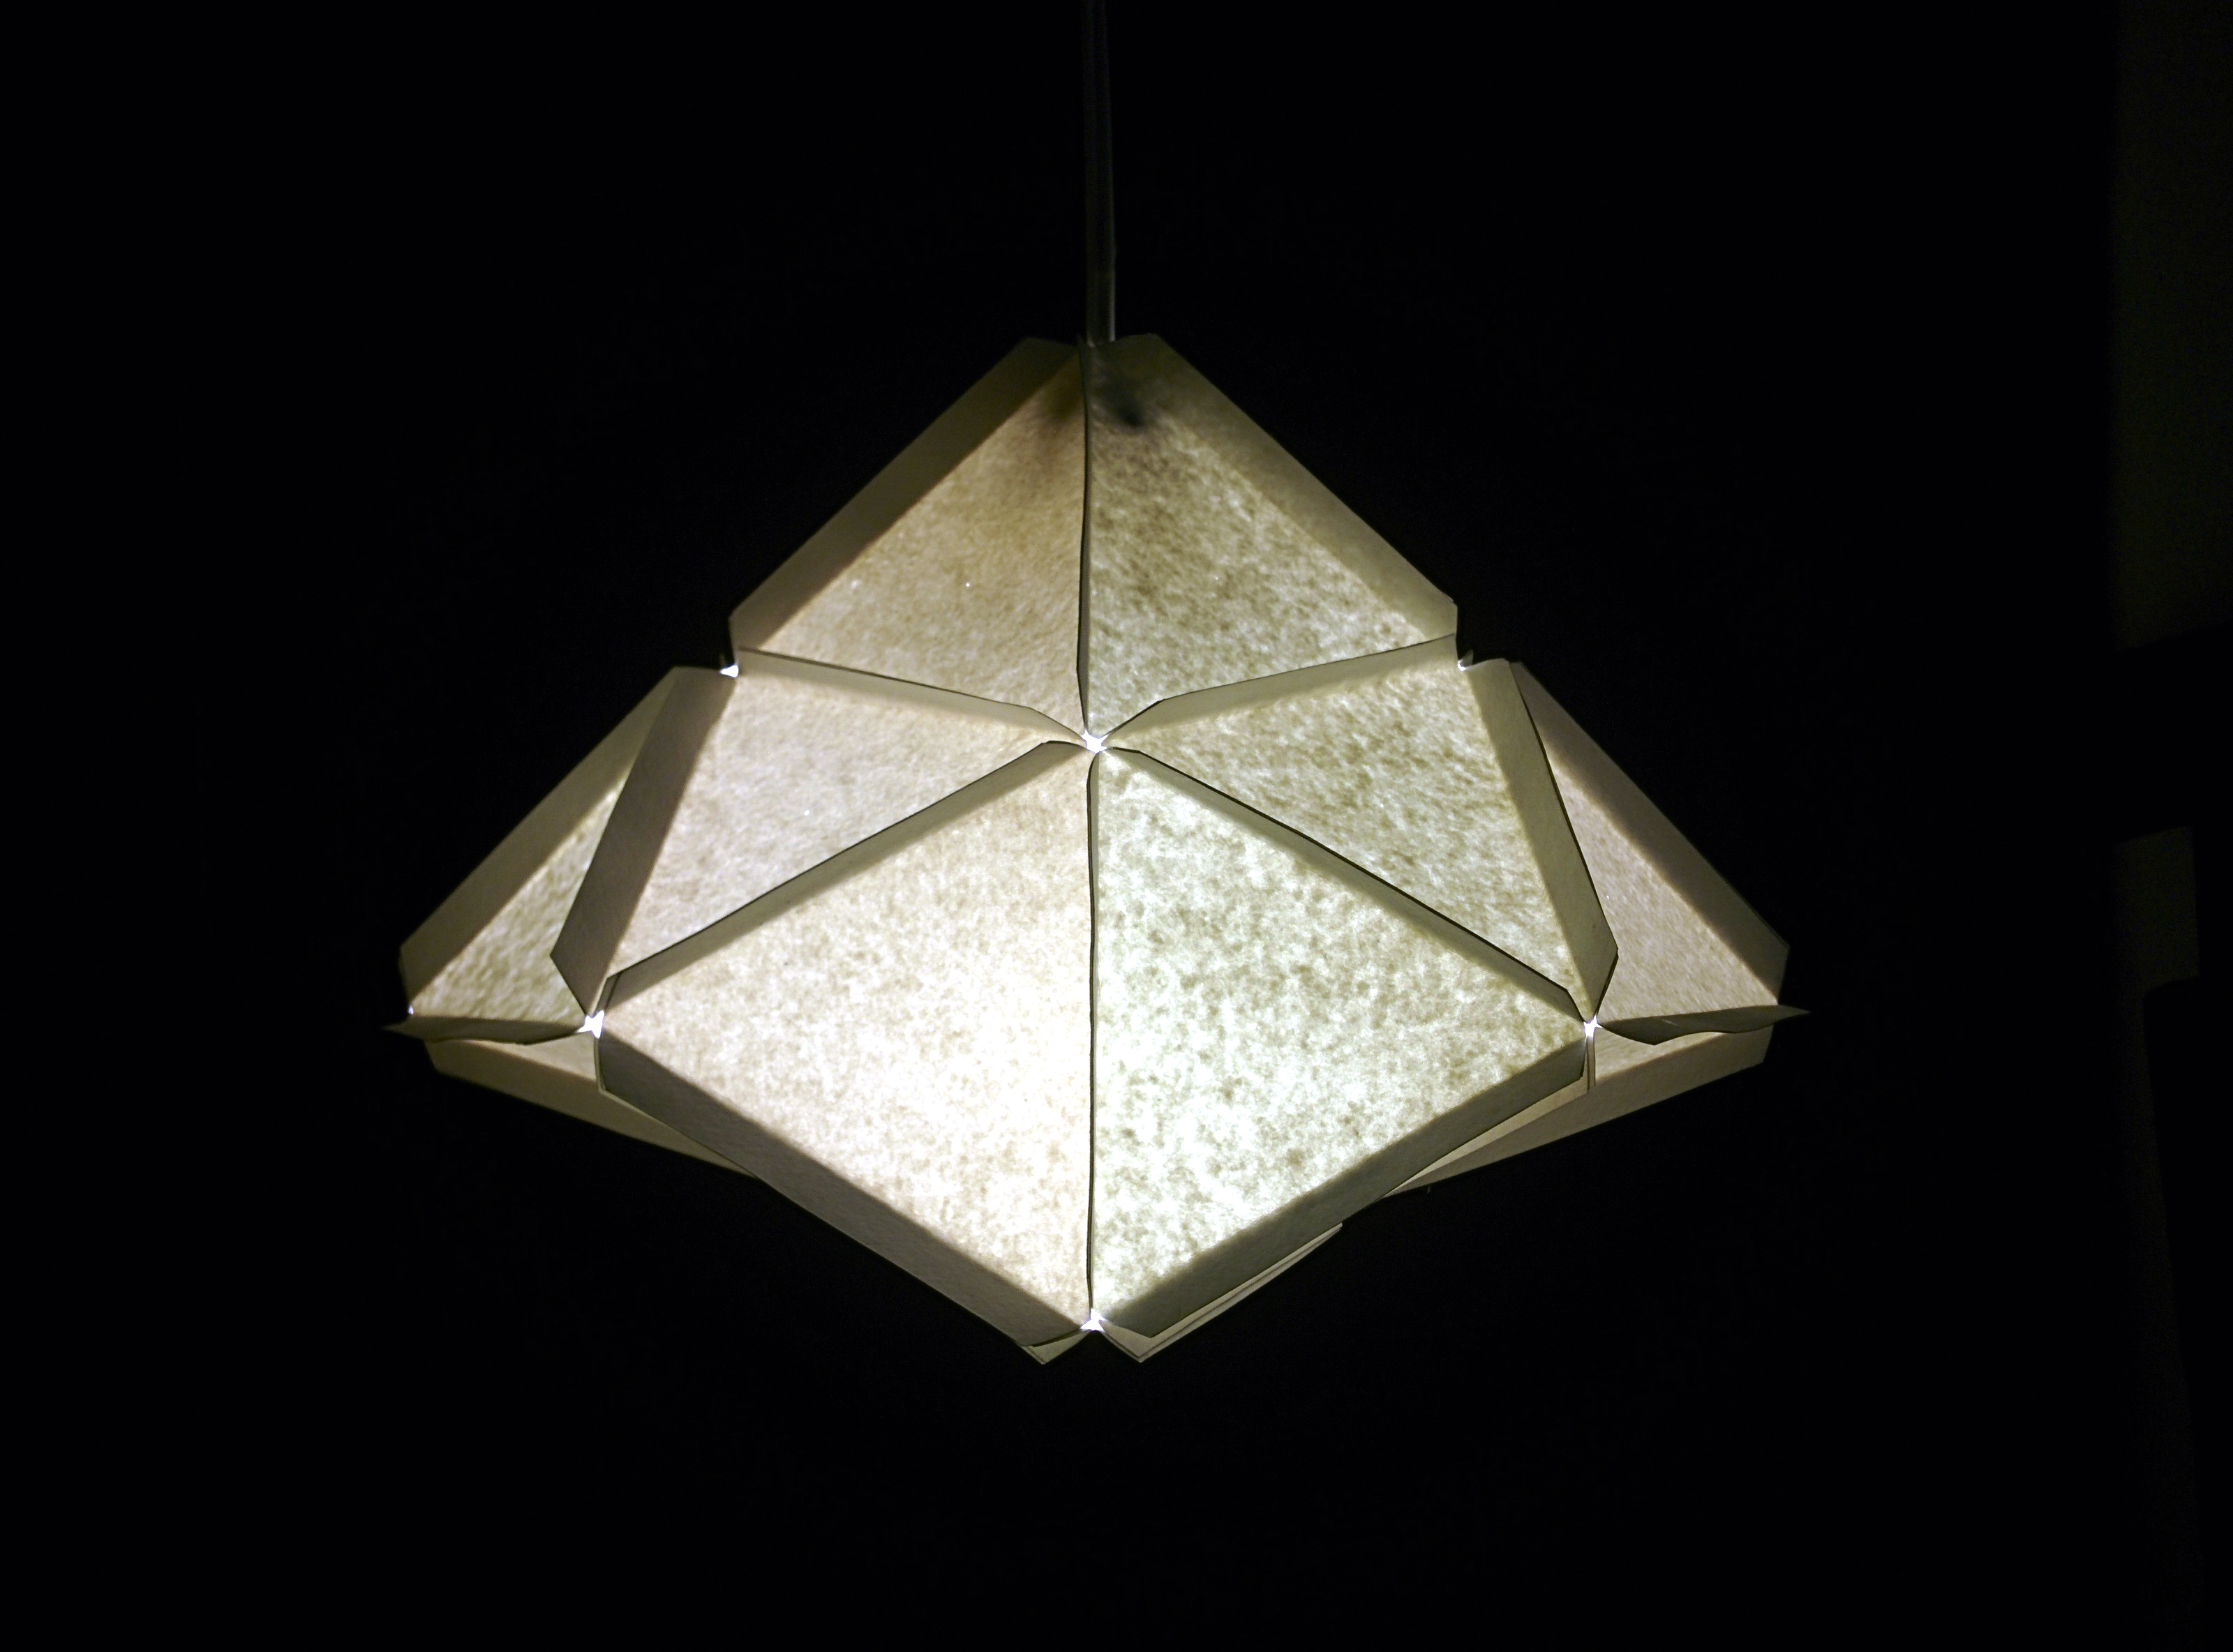 Picture of Modular Geometric Paper Lamps, 5 Designs